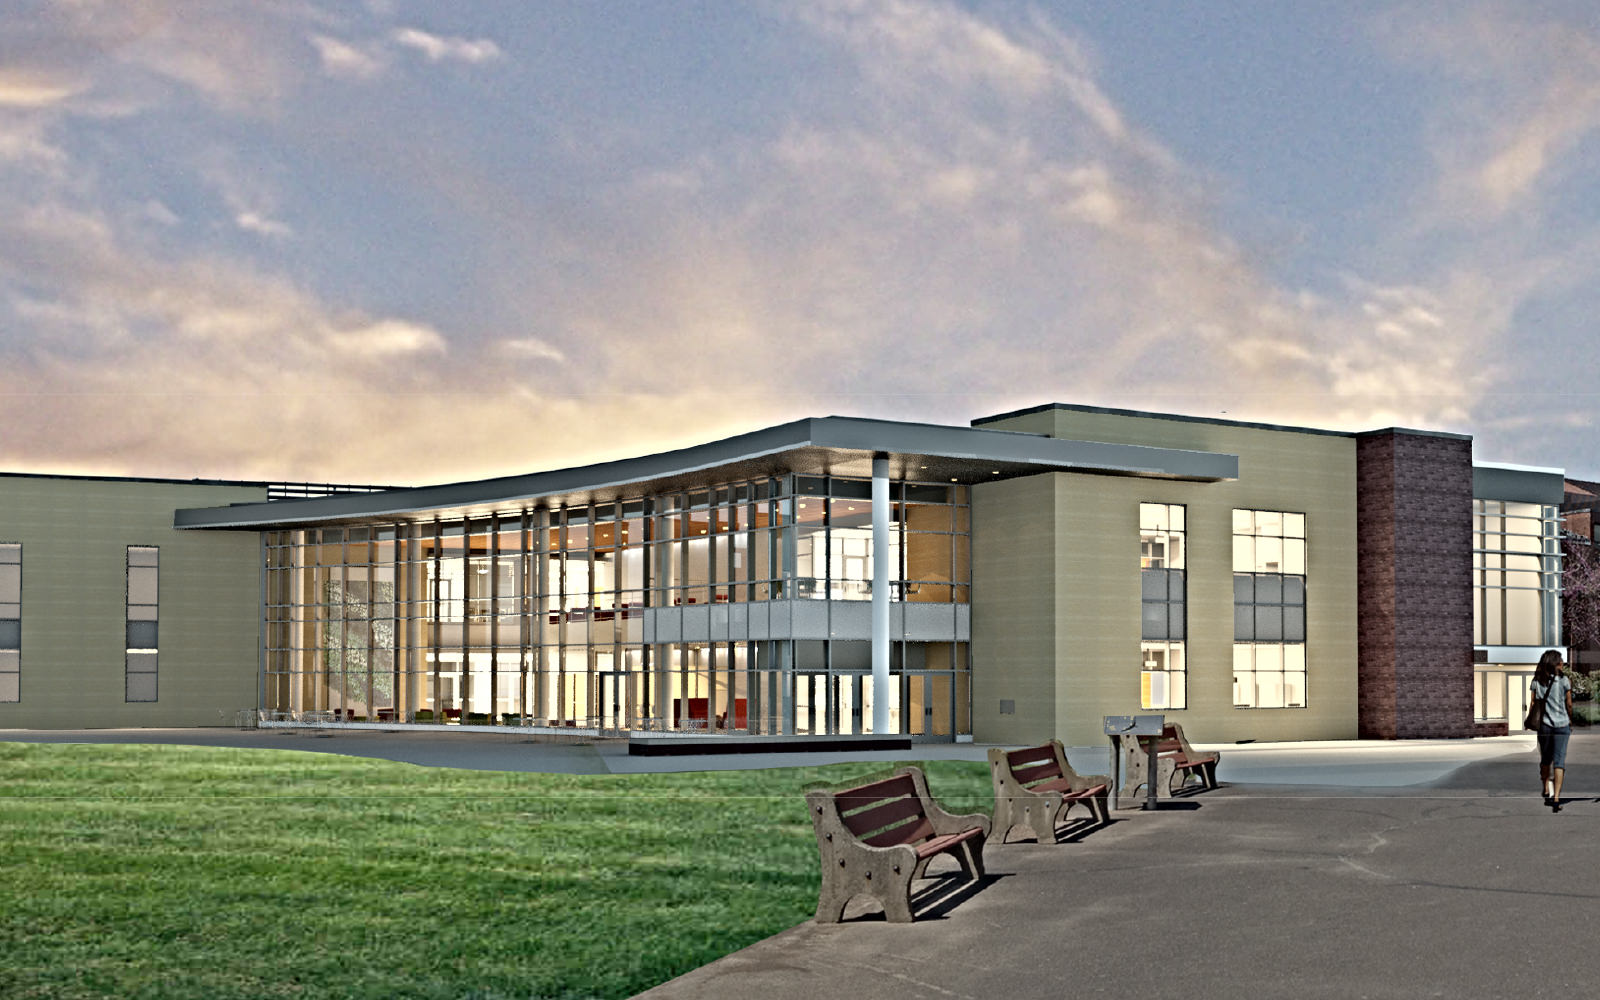 New STEM Facility at BCCC